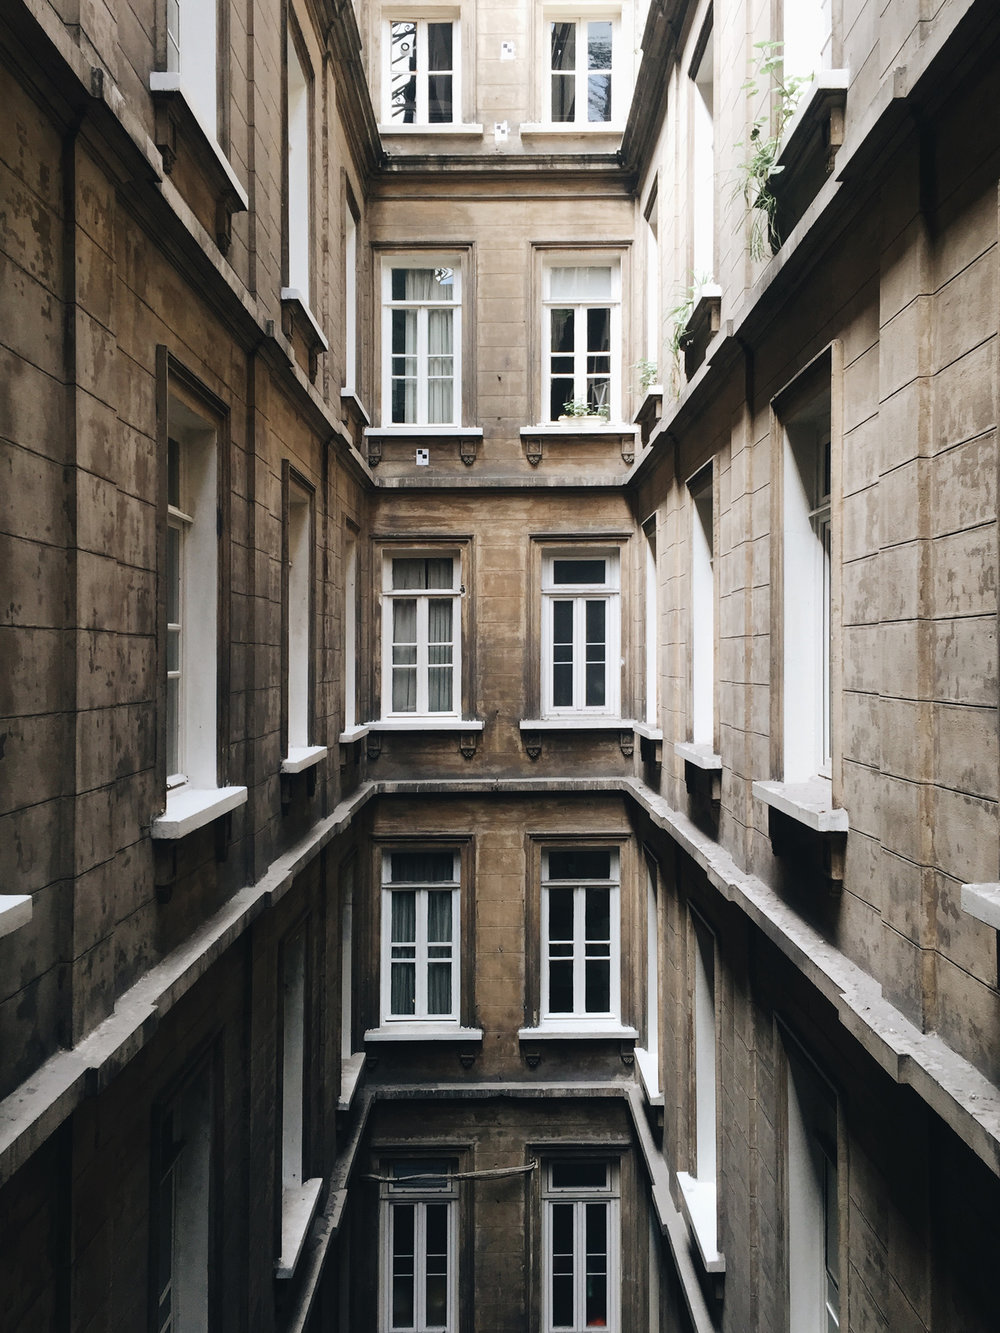 - BG Architects is an Istanbul based architecture firm, founded in 1997 by Bülent Güngör, M.Arch.Along with urban design, educational, residential, commercial, cultural and mixed-use architectural projects with various functions and scales, the firm also provides services in interior architecture and restoration&renovation fields.While maintaining complementary services like design consultancy and application supervision, the main mission of BG Architects is to deliver design output that responds to social, environmental and functional parameters and adds value to the user and its context. According to these objectives, the company advances its practices with offices in Bodrum, Princeton/NJ and Bucharest, combining localand traditional fund of knowledge with contemporary materials and techniques.